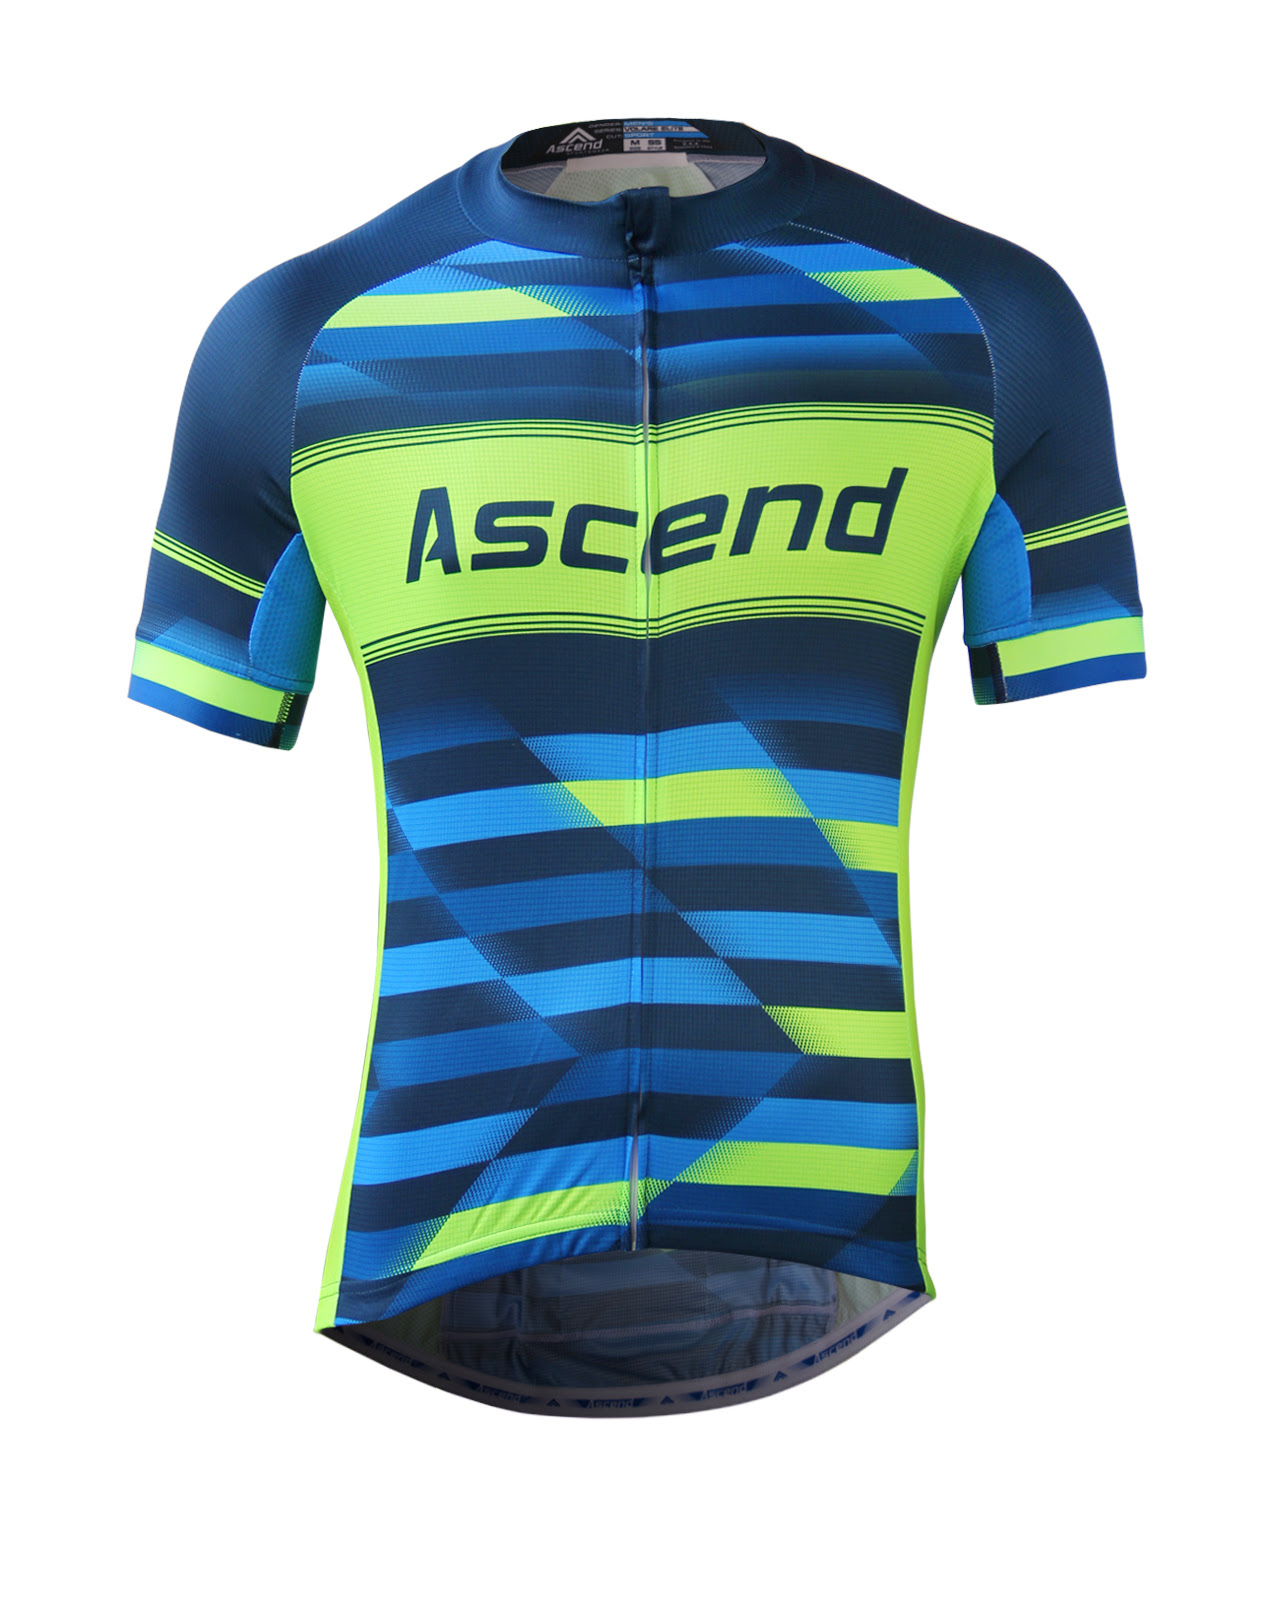 Volare Elite Custom Cycling Jersey  Ascend Sportswear